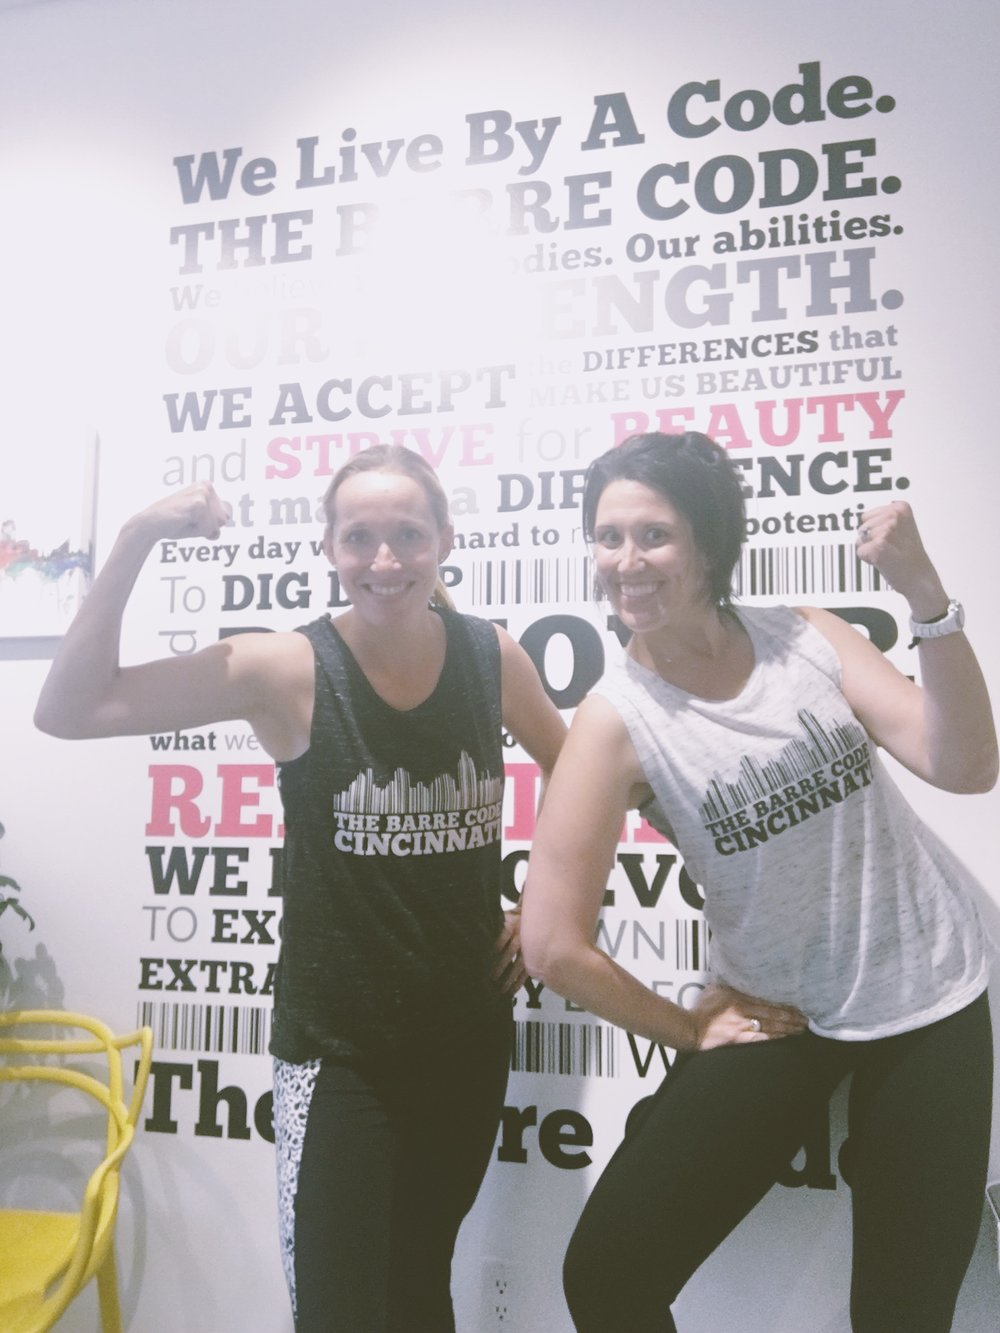 Meet Michelle, the owner of The Barre Code Cincy.  She's cool. My poseing, on the other hand, needs some work.